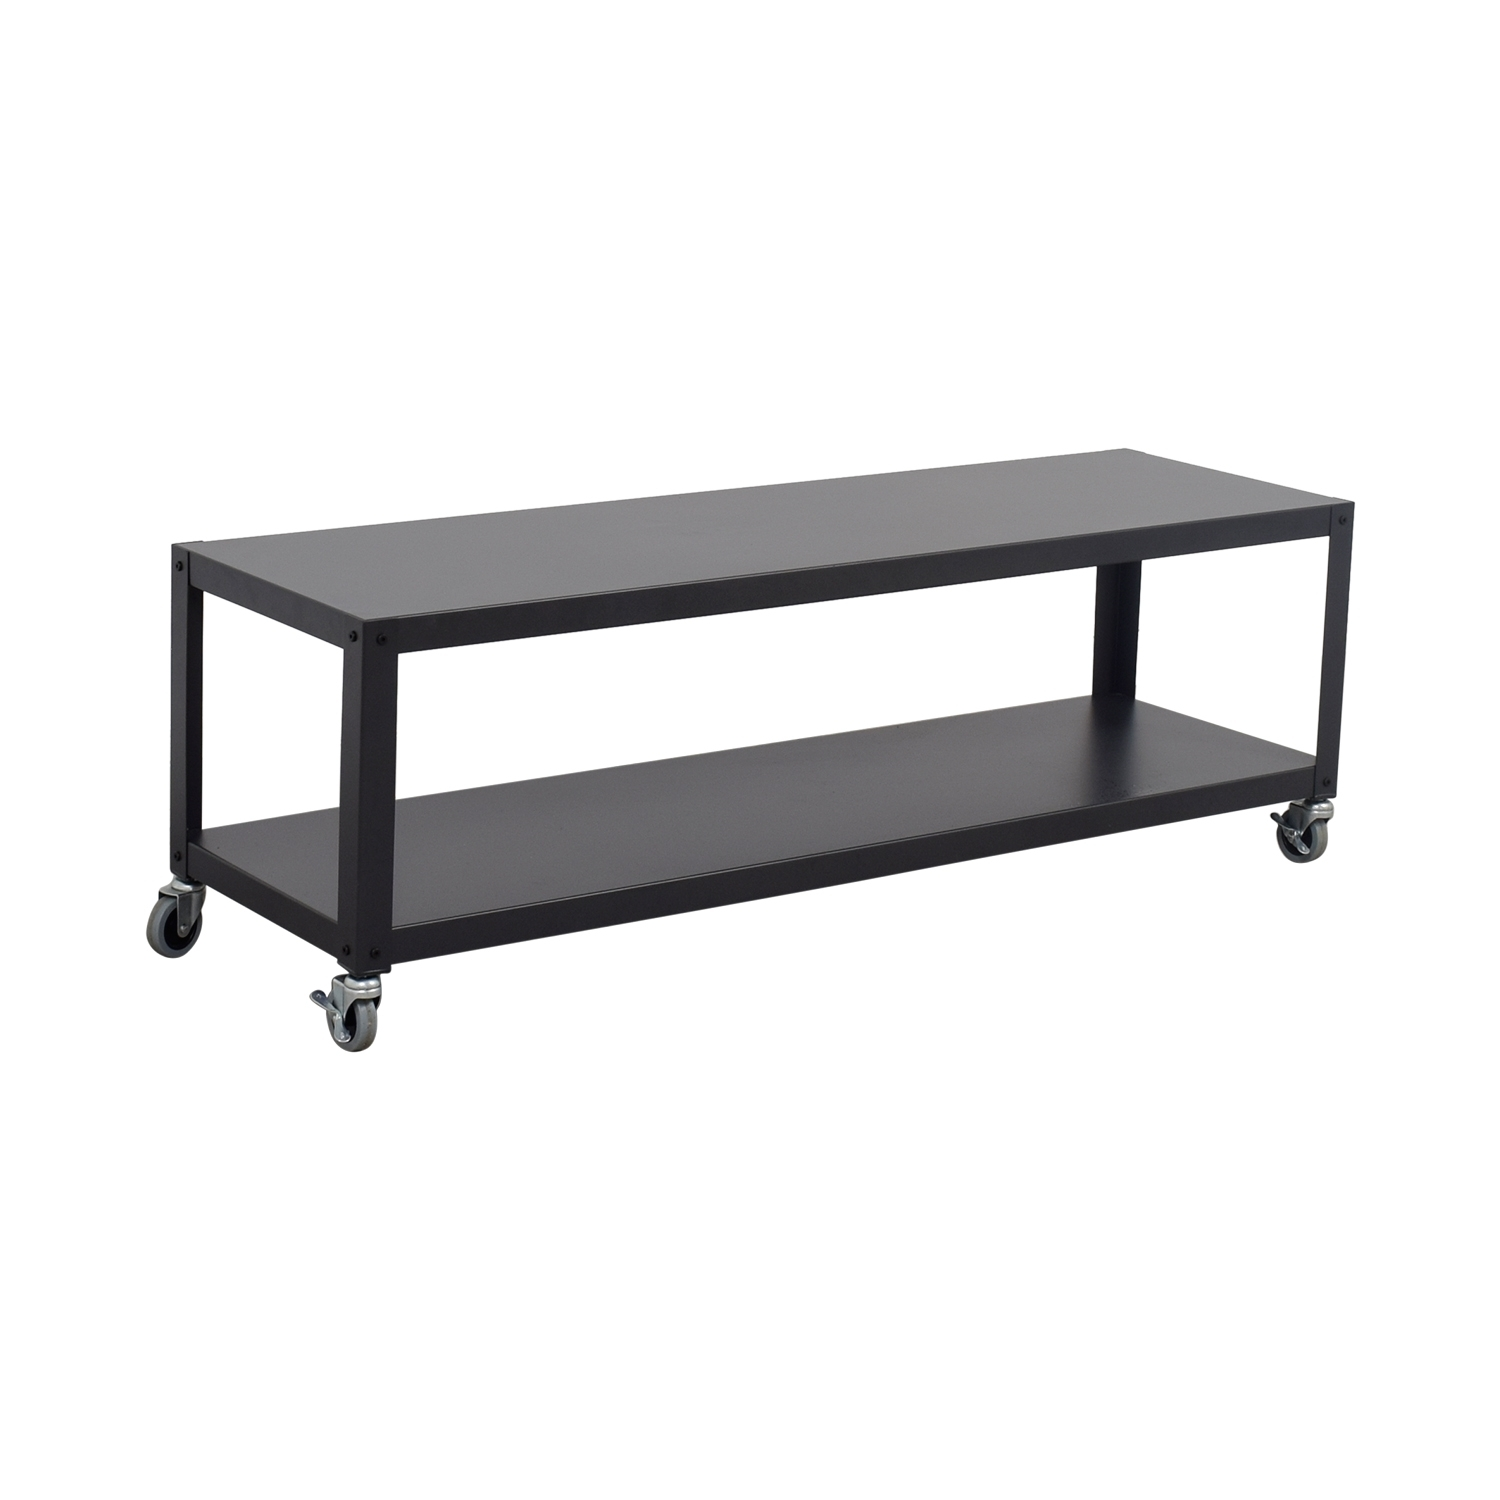 57% Off - Cb2 Cb2 Go-Cart Rolling Media Console / Storage inside Go-Cart White Rolling Coffee Tables (Image 2 of 30)